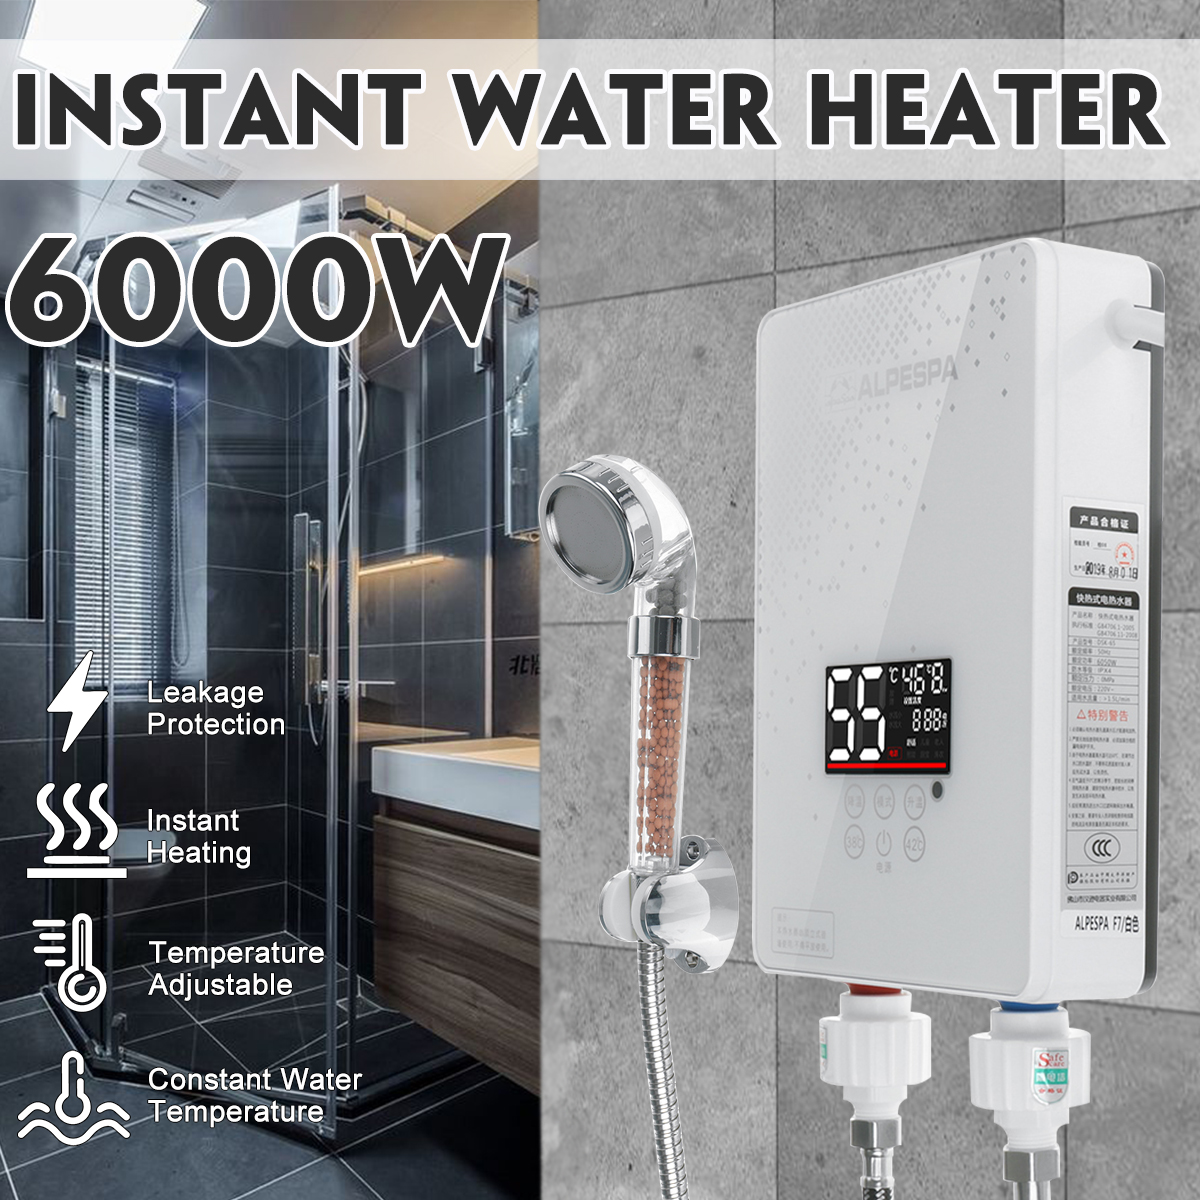 6000W 220V Instantaneous Water Heater Mini Instant Electric Tankless Hot Water Heater Shower Kitchen Faucet Bathroom Shower